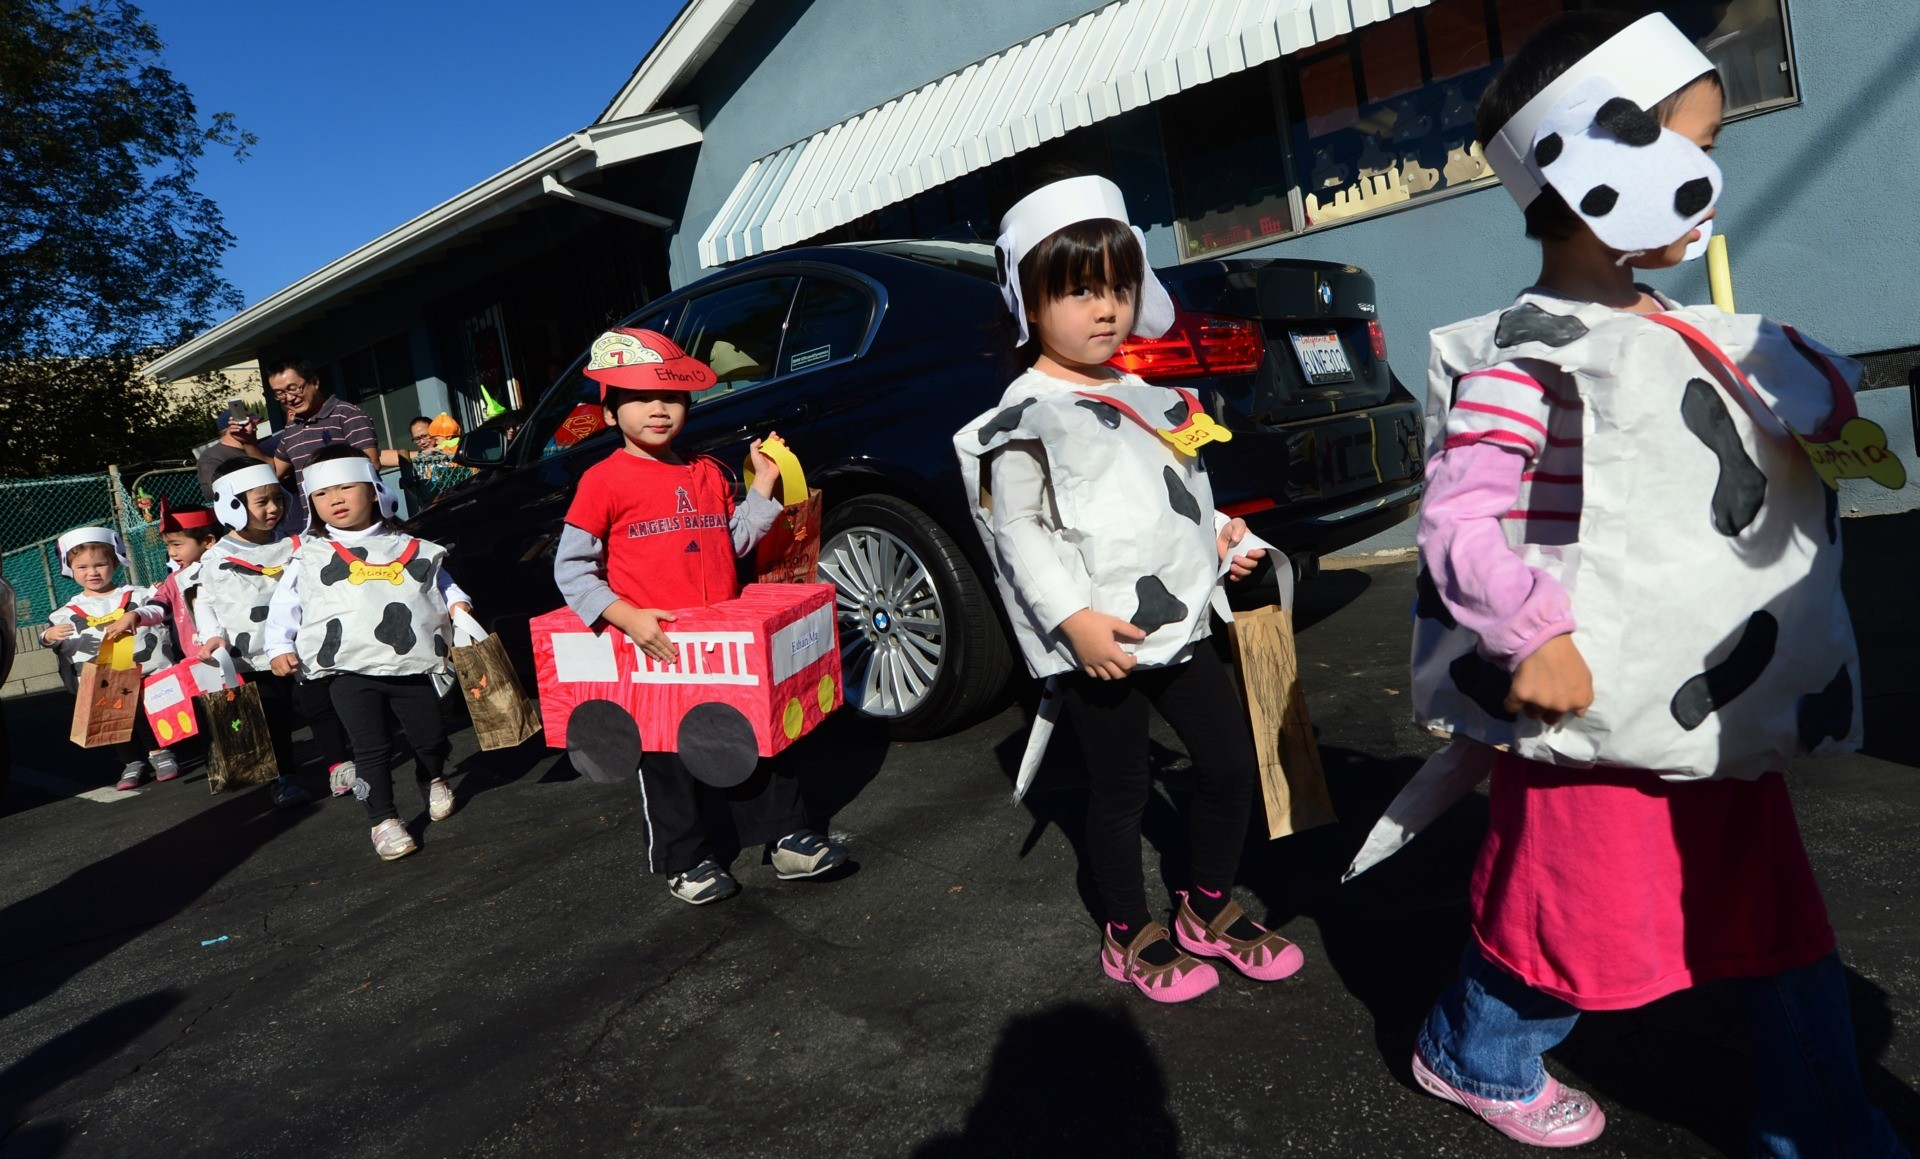 Children from the Happy Day School in Monterey Park, California, celebrate Halloween on October 31, 2013 by going trick or treating at a nearby home which has provided services to the developmentally disabled community since the mid 1950's. AFP PHOTO/Frederic J. BROWN (Photo credit should read FREDERIC J. BROWN/AFP via Getty Images)